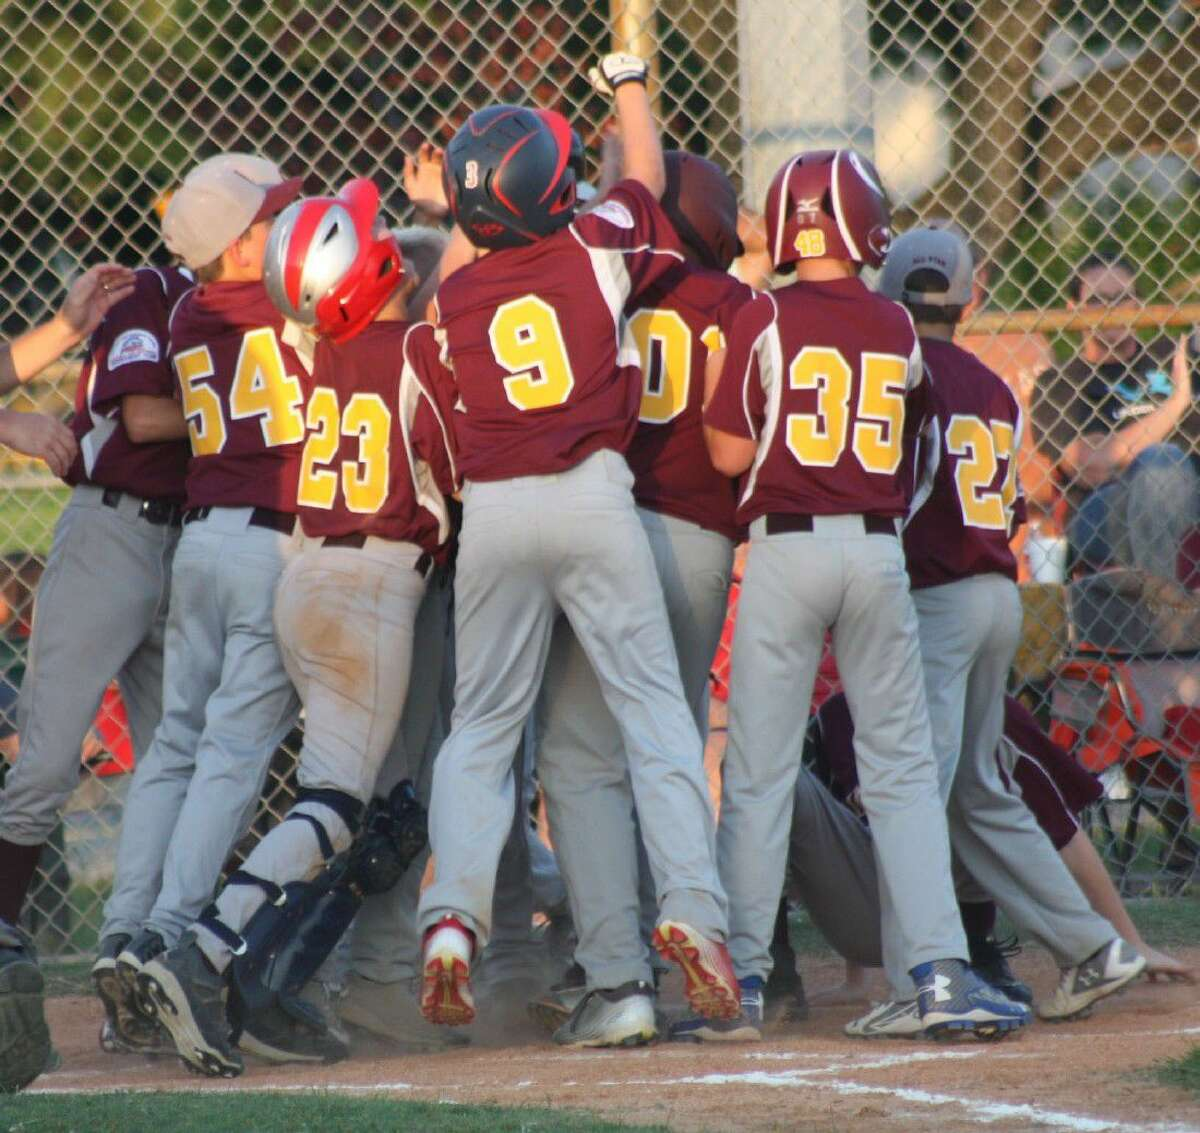 The Deer Park Bronco Gold All-Stars mob Benjamin Gutierrez at home plate after he hit a three-run homer in the third inning against Crosby Friday night. The team clinched a regional berth Saturday with another win over Crosby.